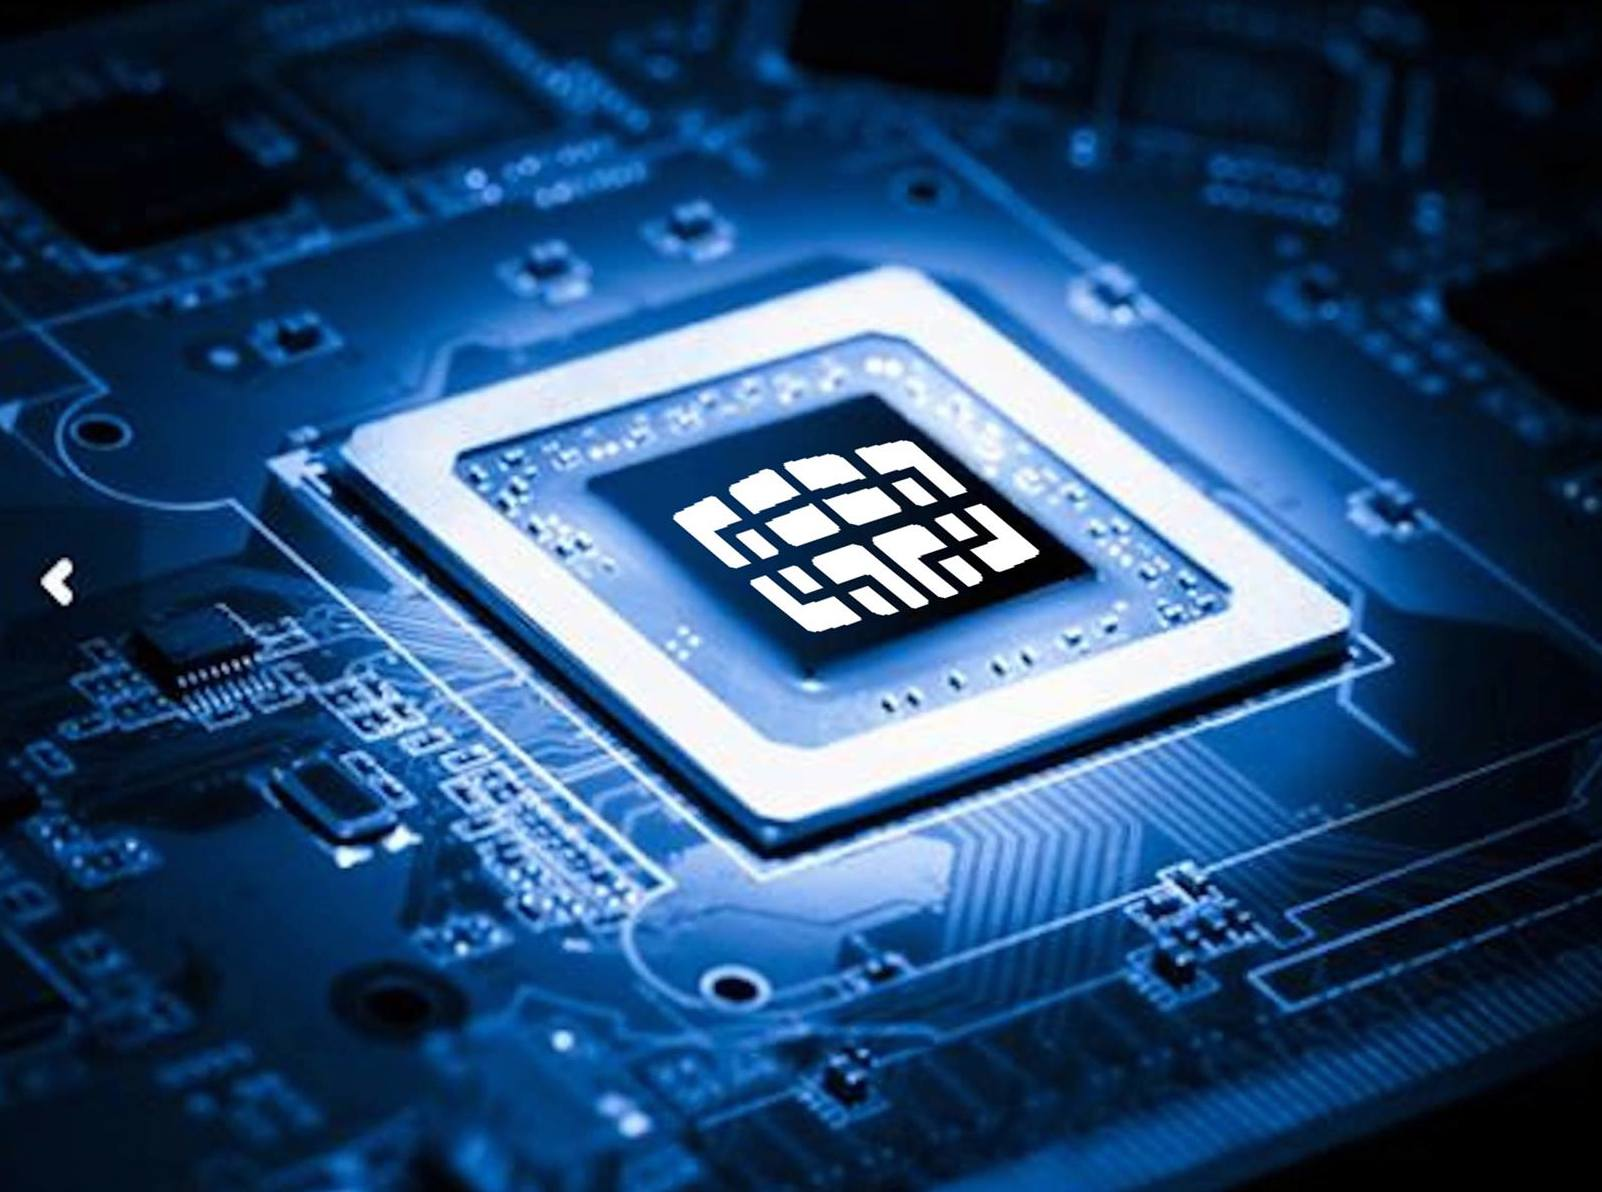 Global Semiconductor Sales Increase in 2nd Quarter